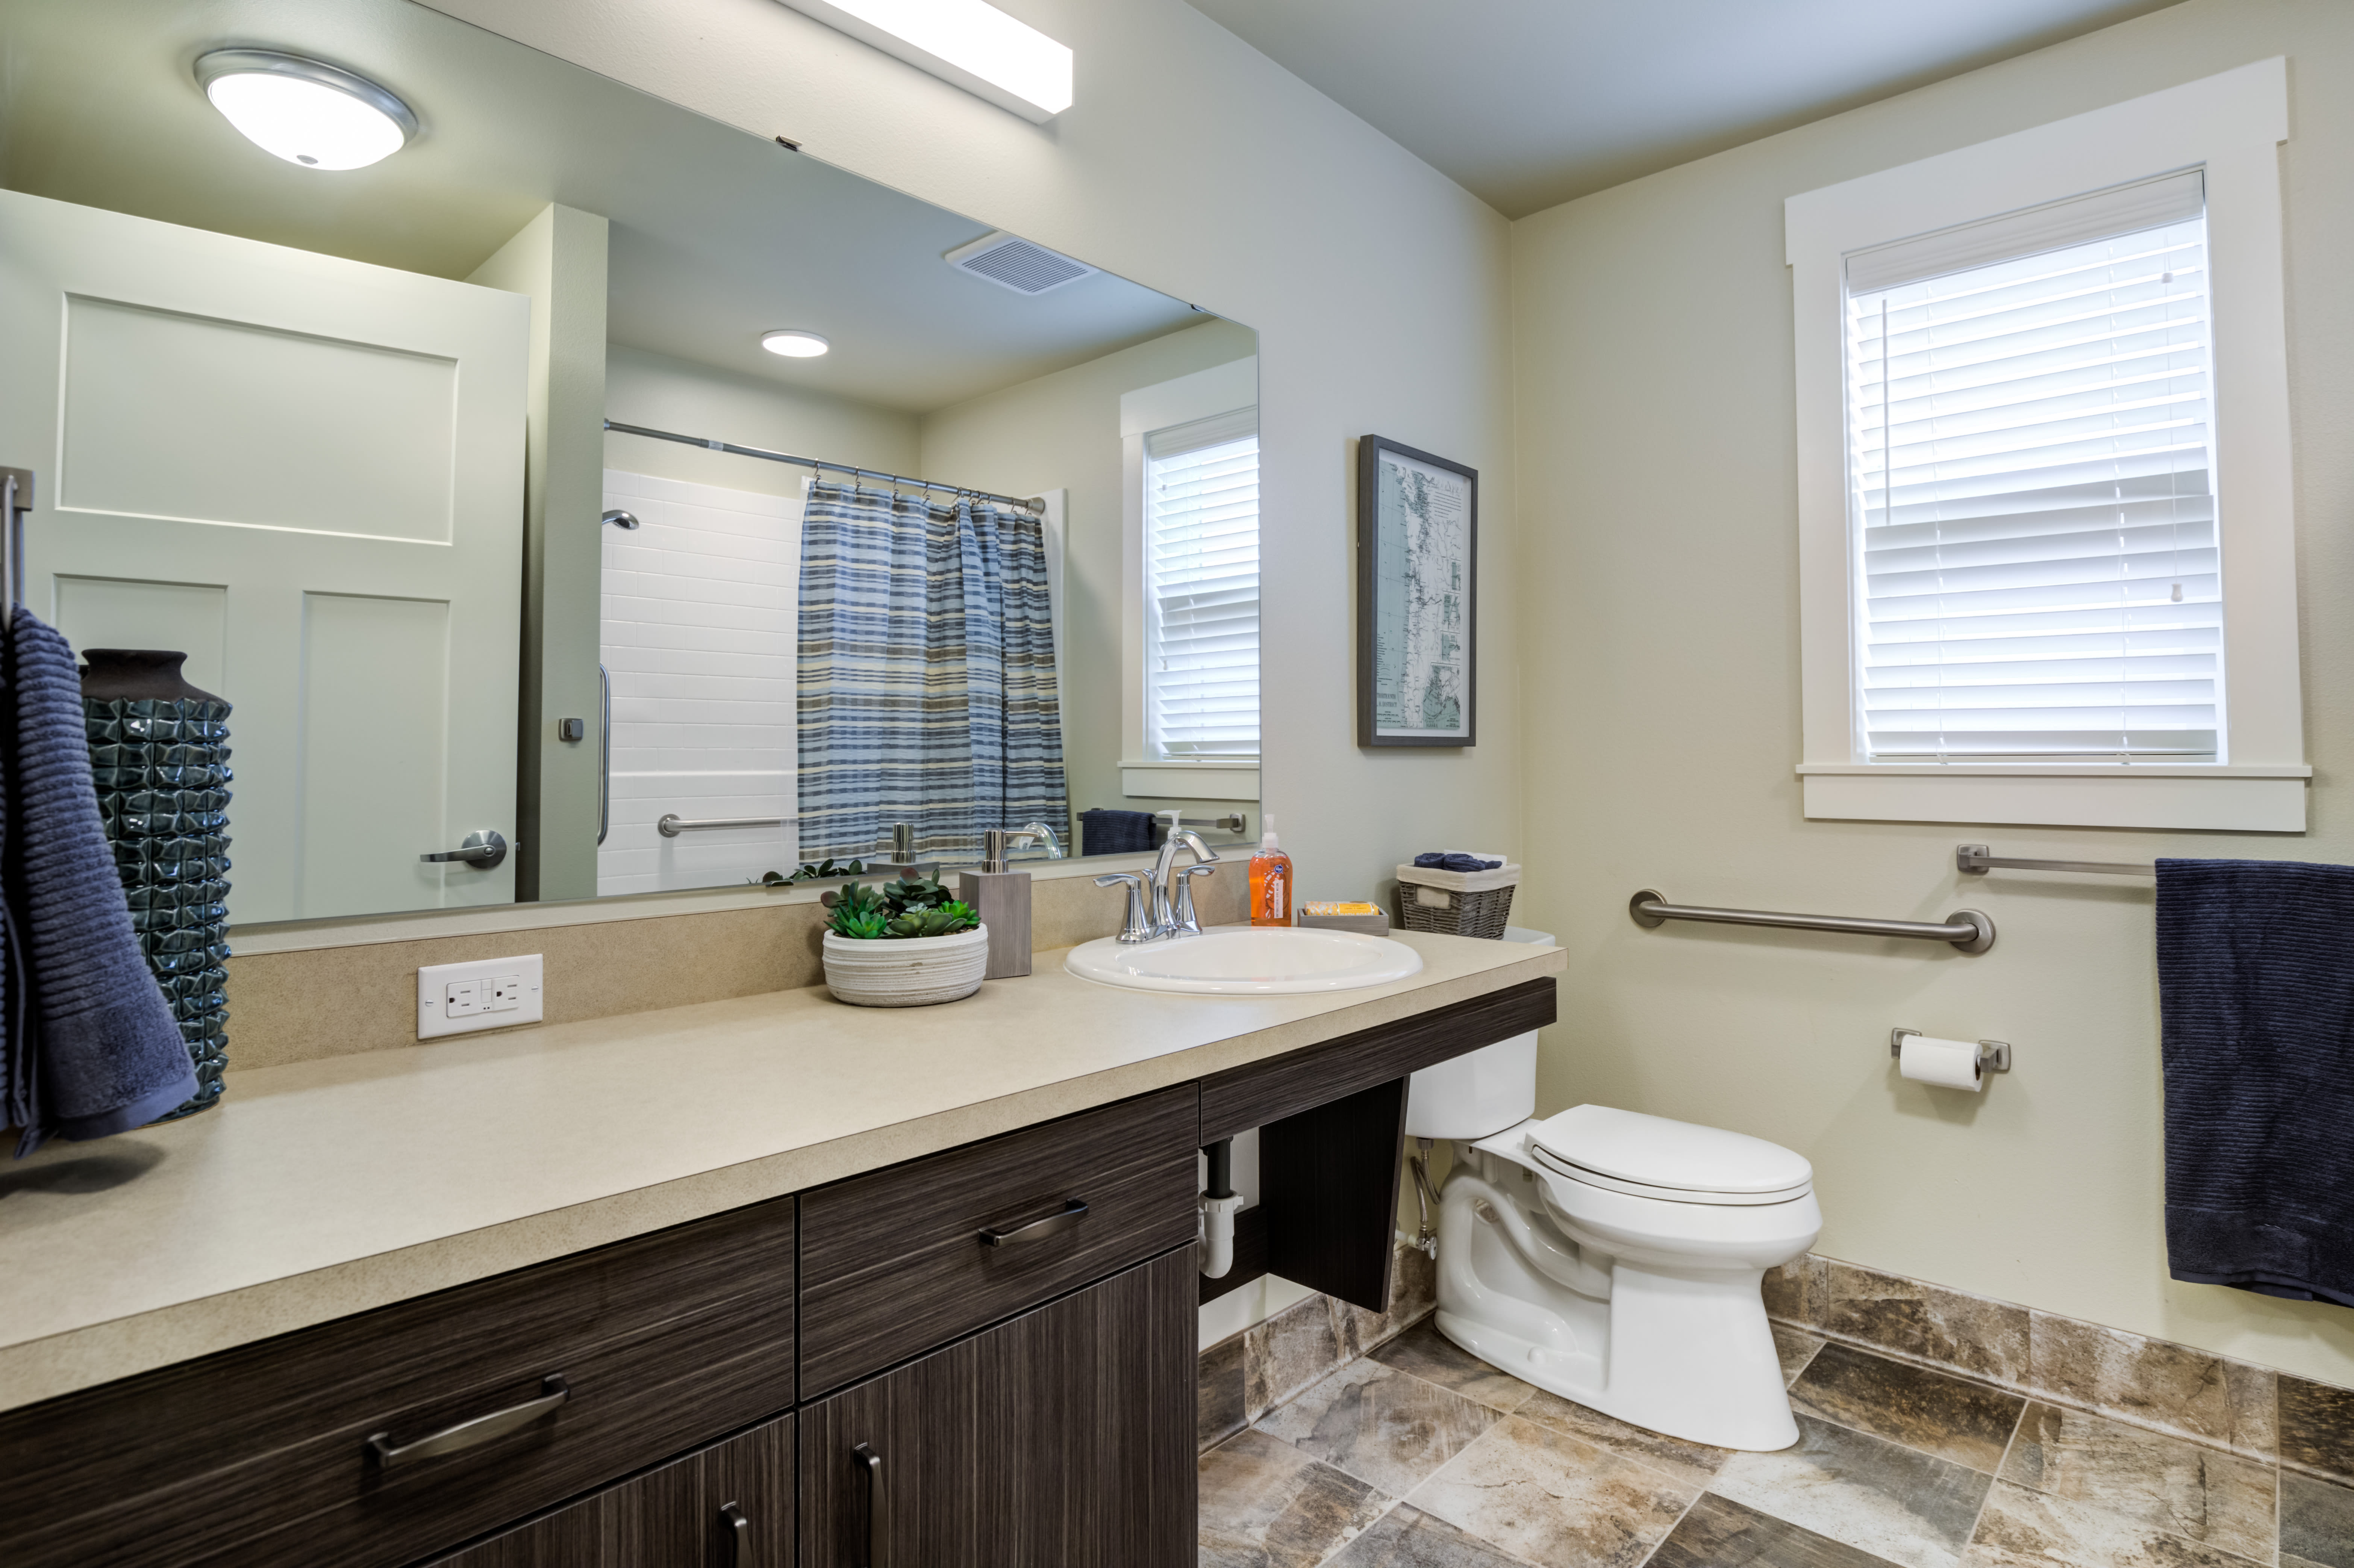 Independent Living Cottage Bathroom at Mirror Lake Village Senior Living Community in Federal Way, WA